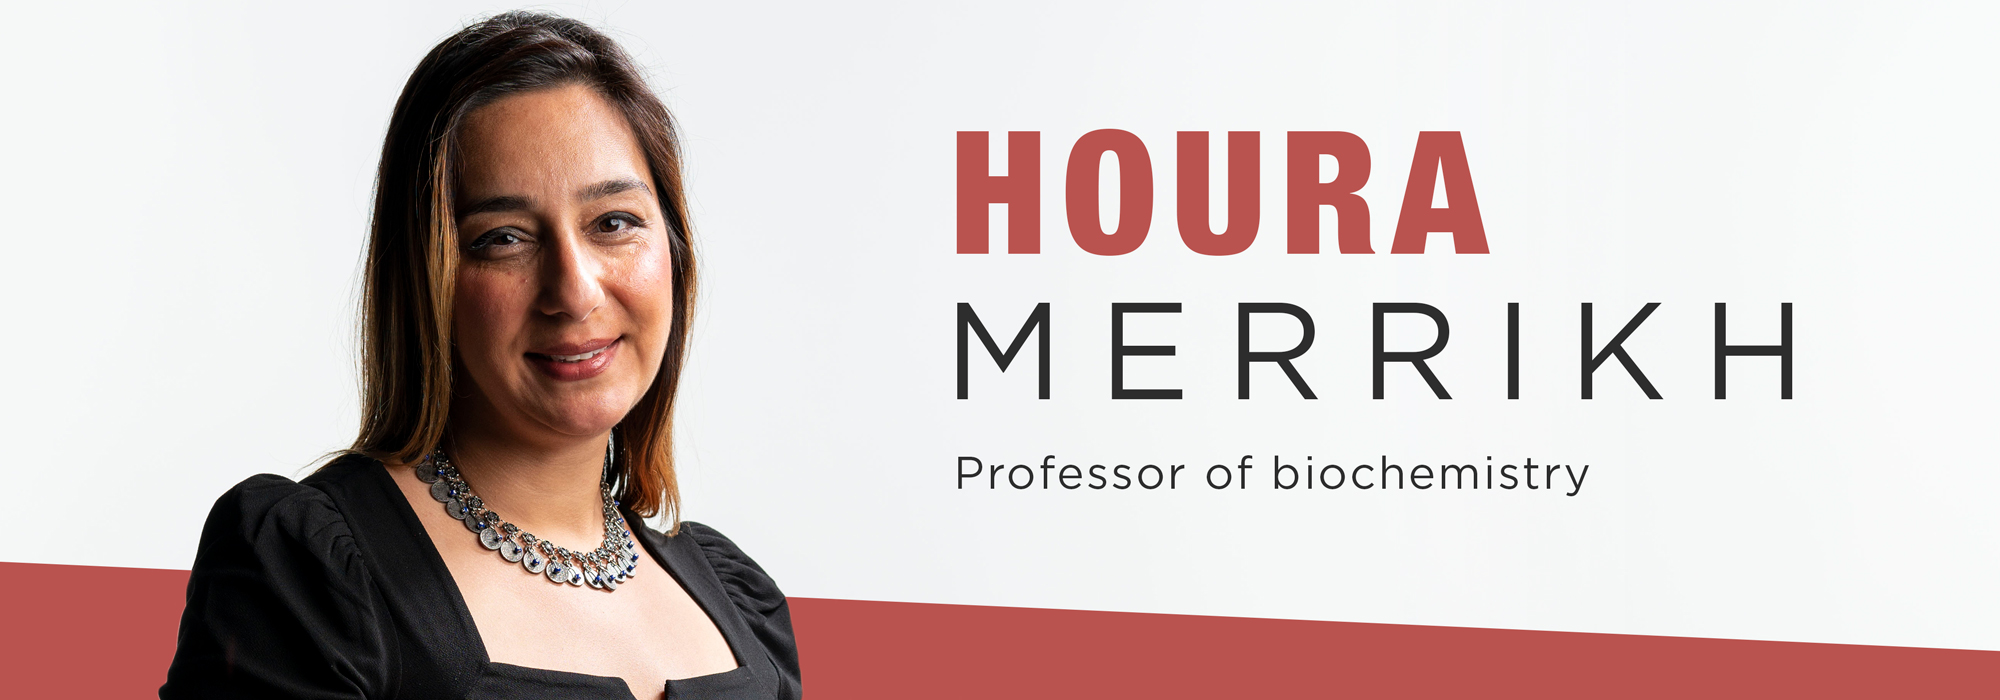 New faculty Houra Merrikh: On a collision course with antibiotic resistance